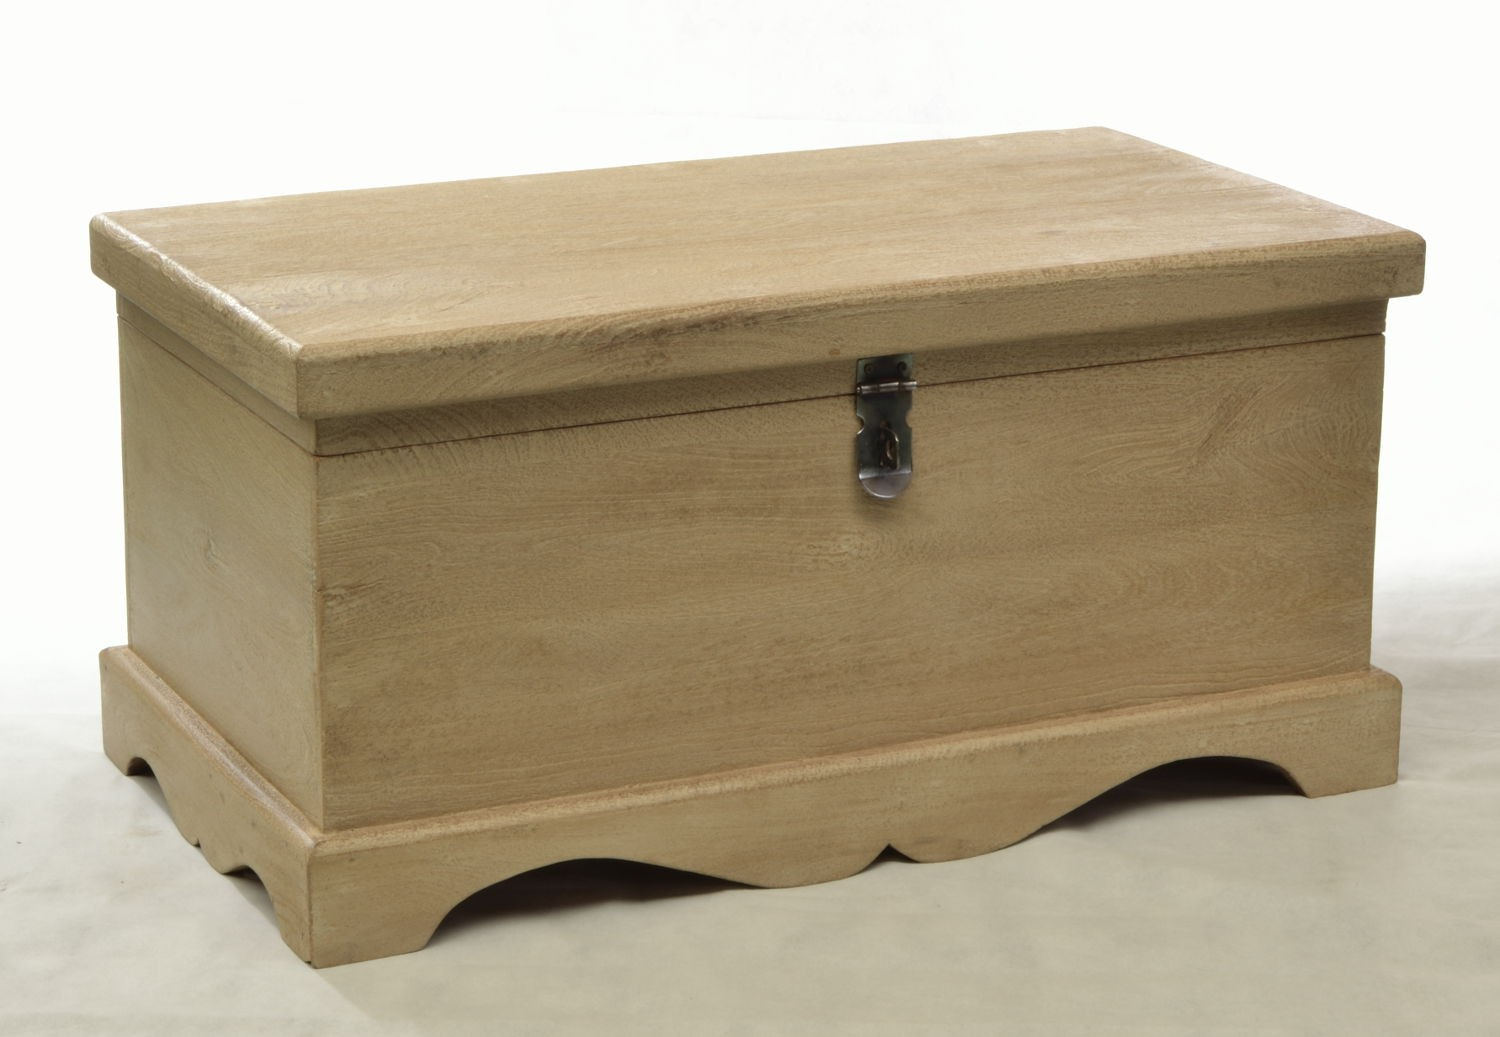 Buy A Wooden Storage Chest Or Toy Box With Distressed Finish